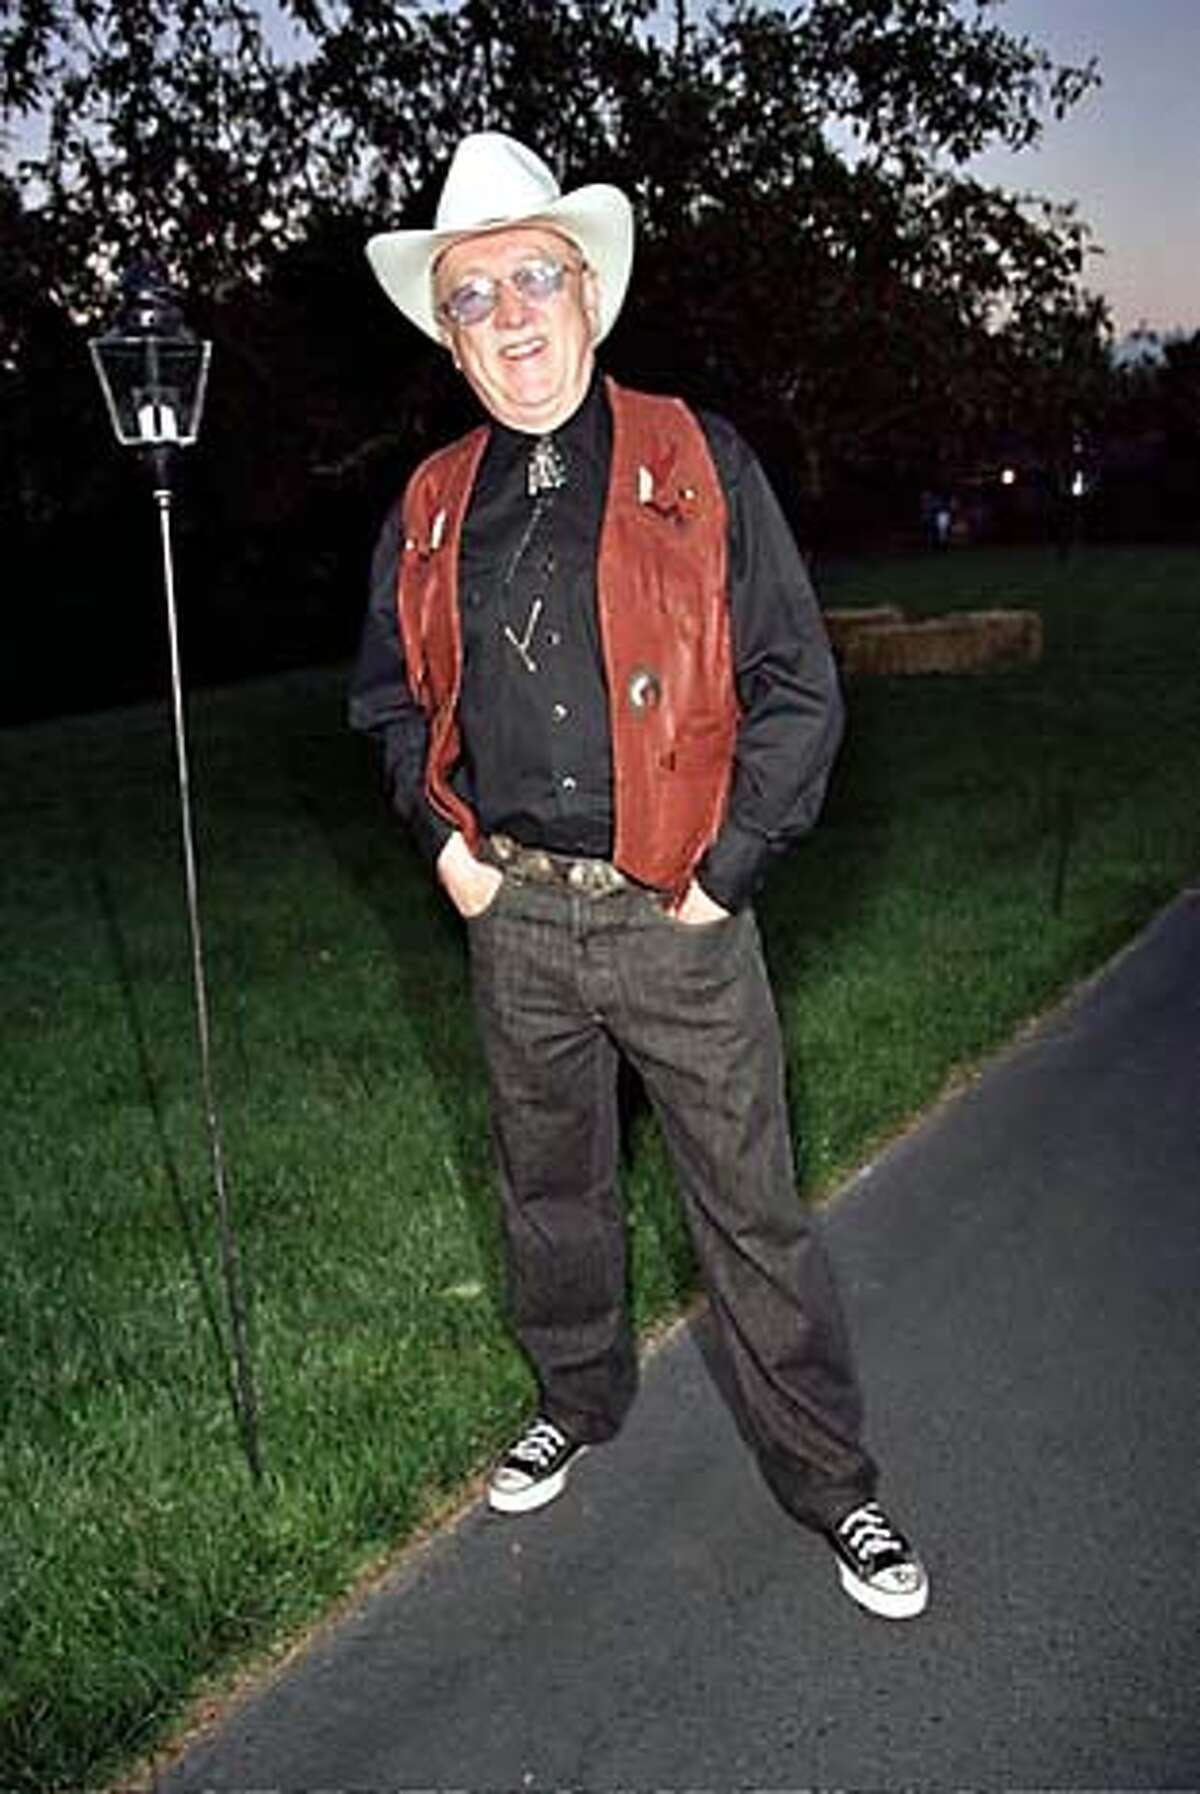 Wilkes Bashford at the Sansby Cowboy party,